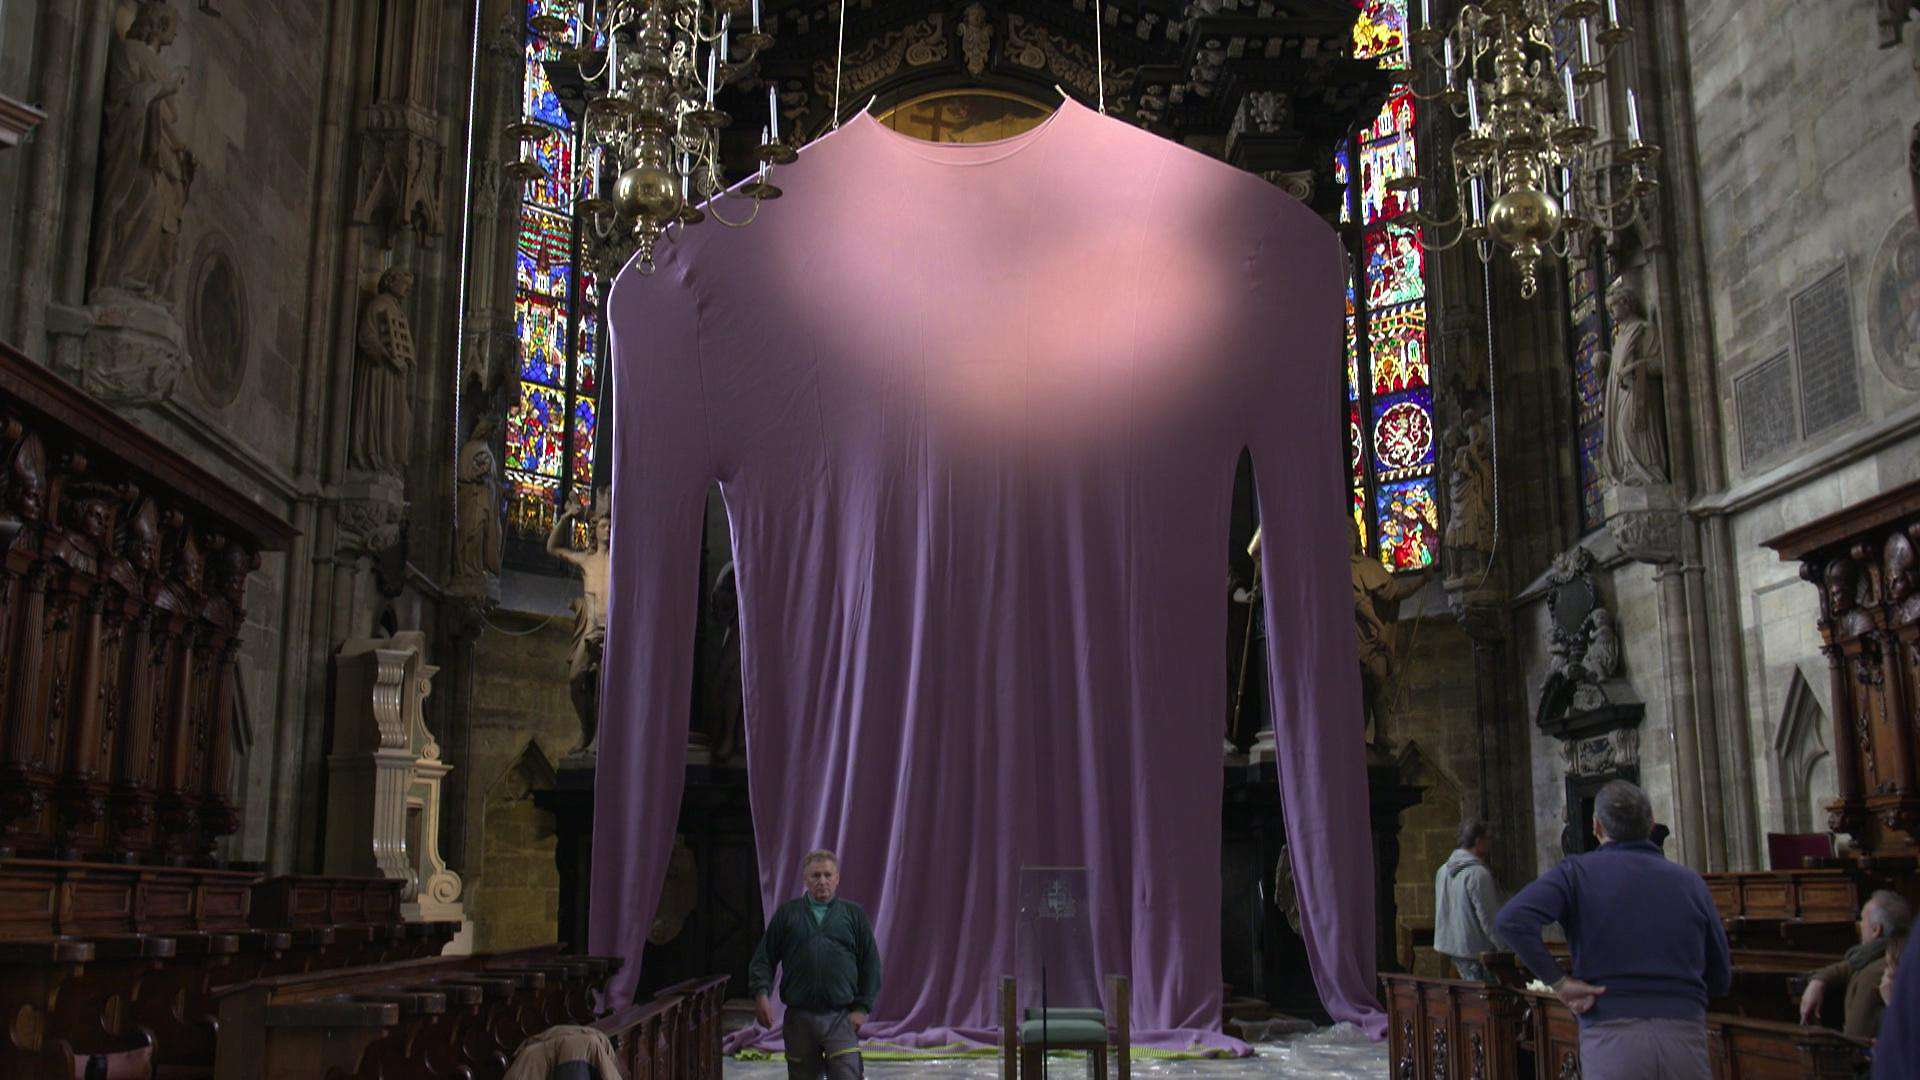 Vienna Cathedral Displays 'Porn' Artist's Giant Purple Sweater for Lent